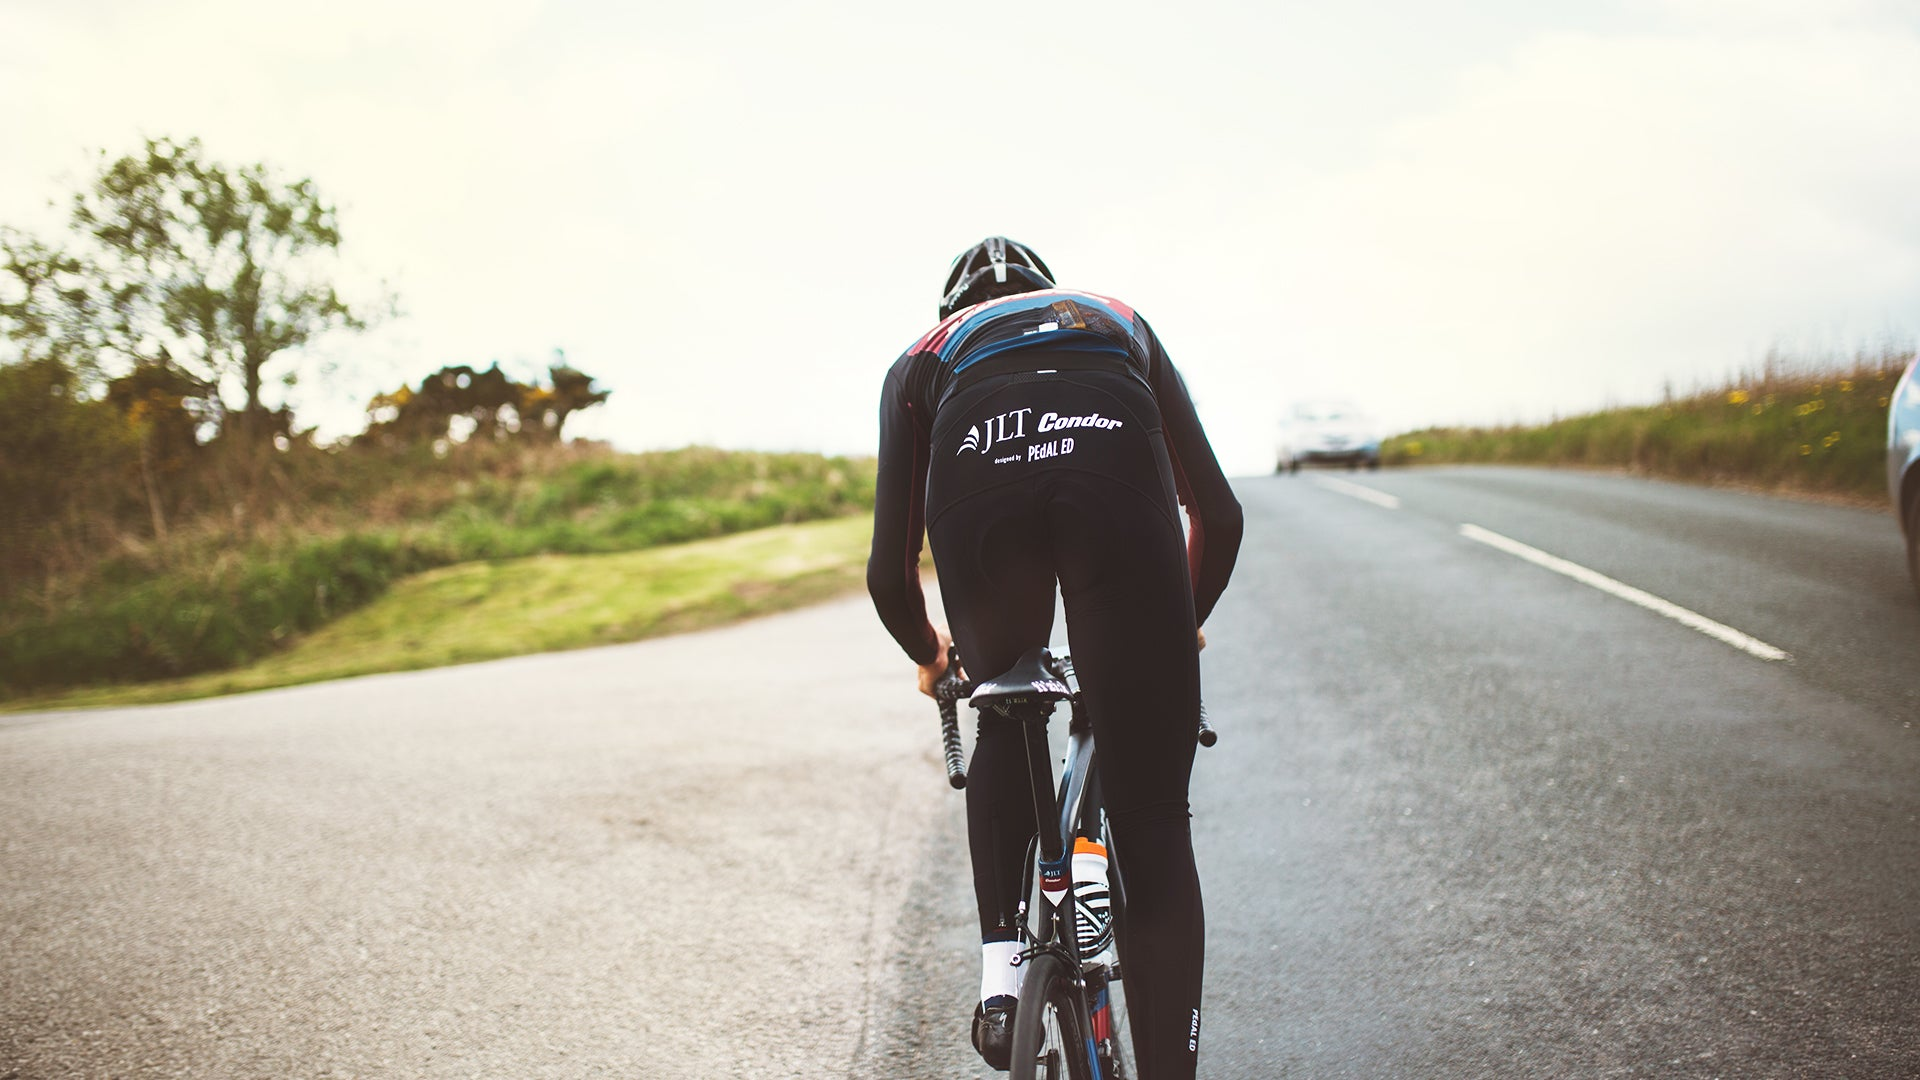 JLT Condor rider out of the saddle